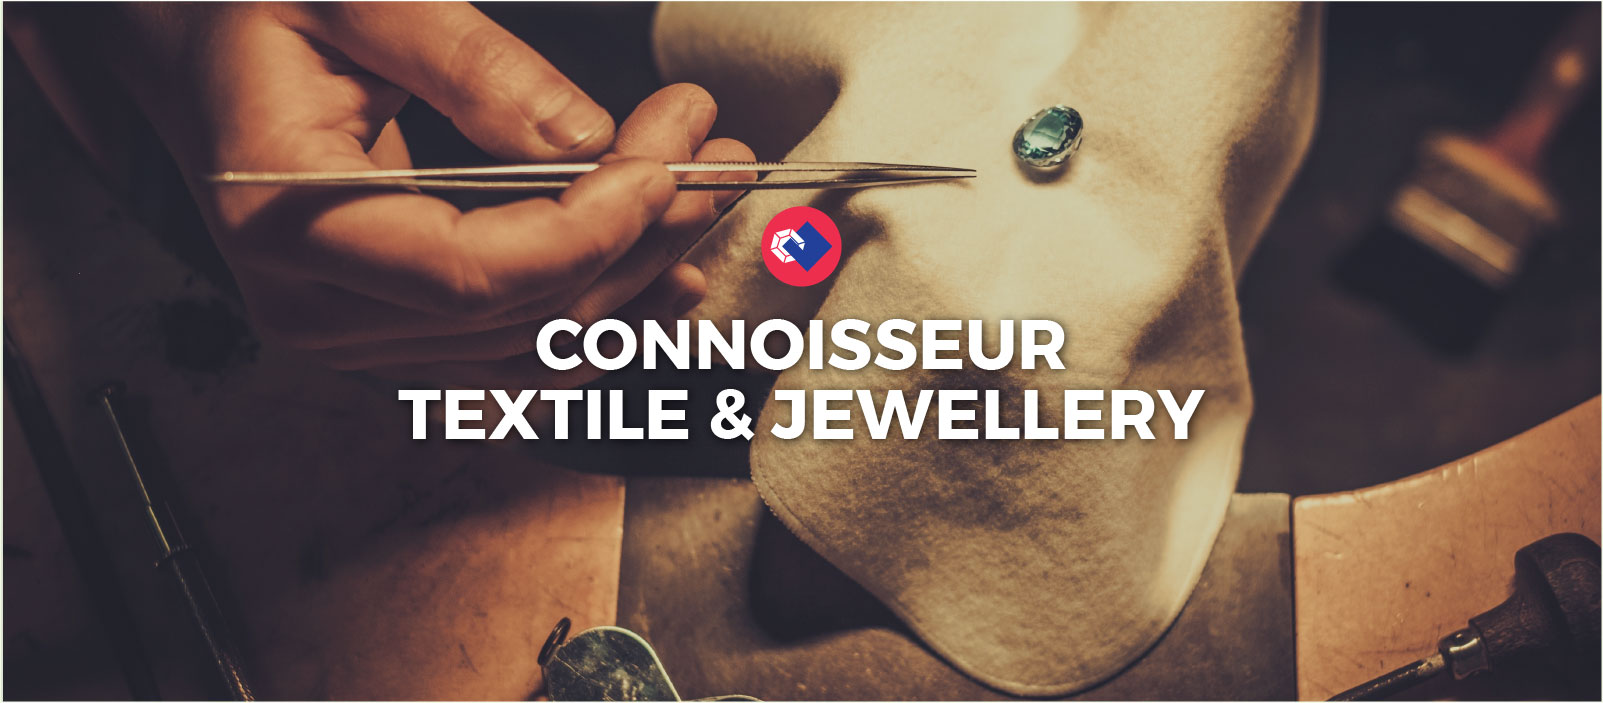 India By Hand Connoisseur Textile & Jewellery